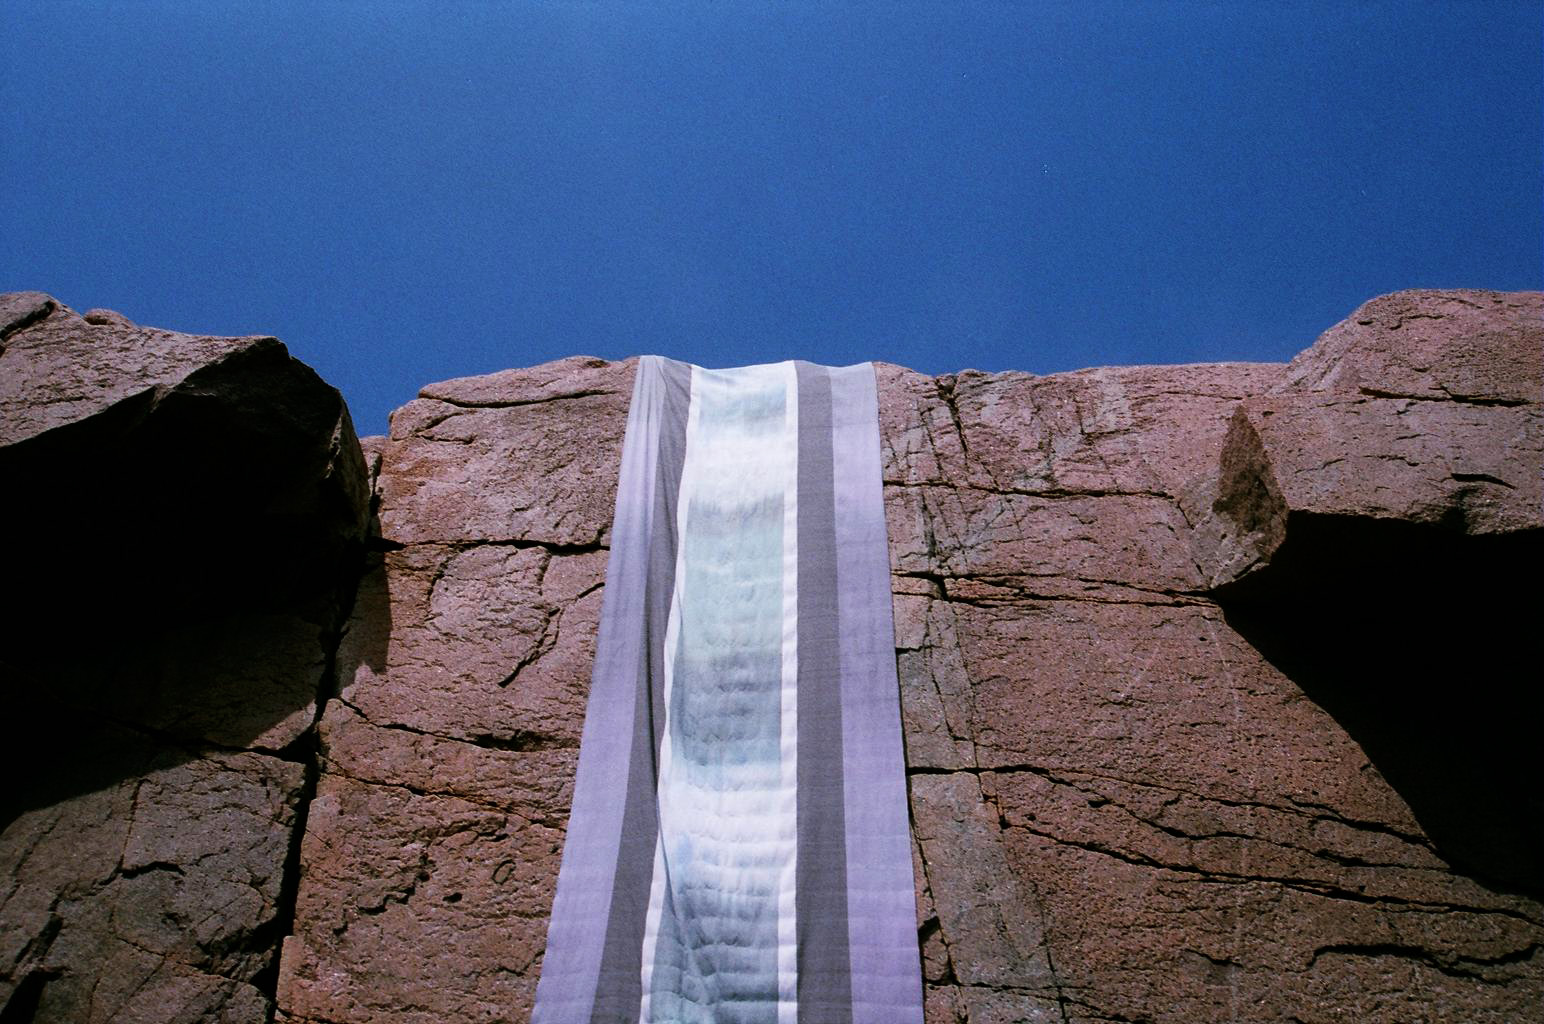 Banner-Scape No. 4: Mount Desert, ME . Hand-woven, hand-dyed cloth, 2013.